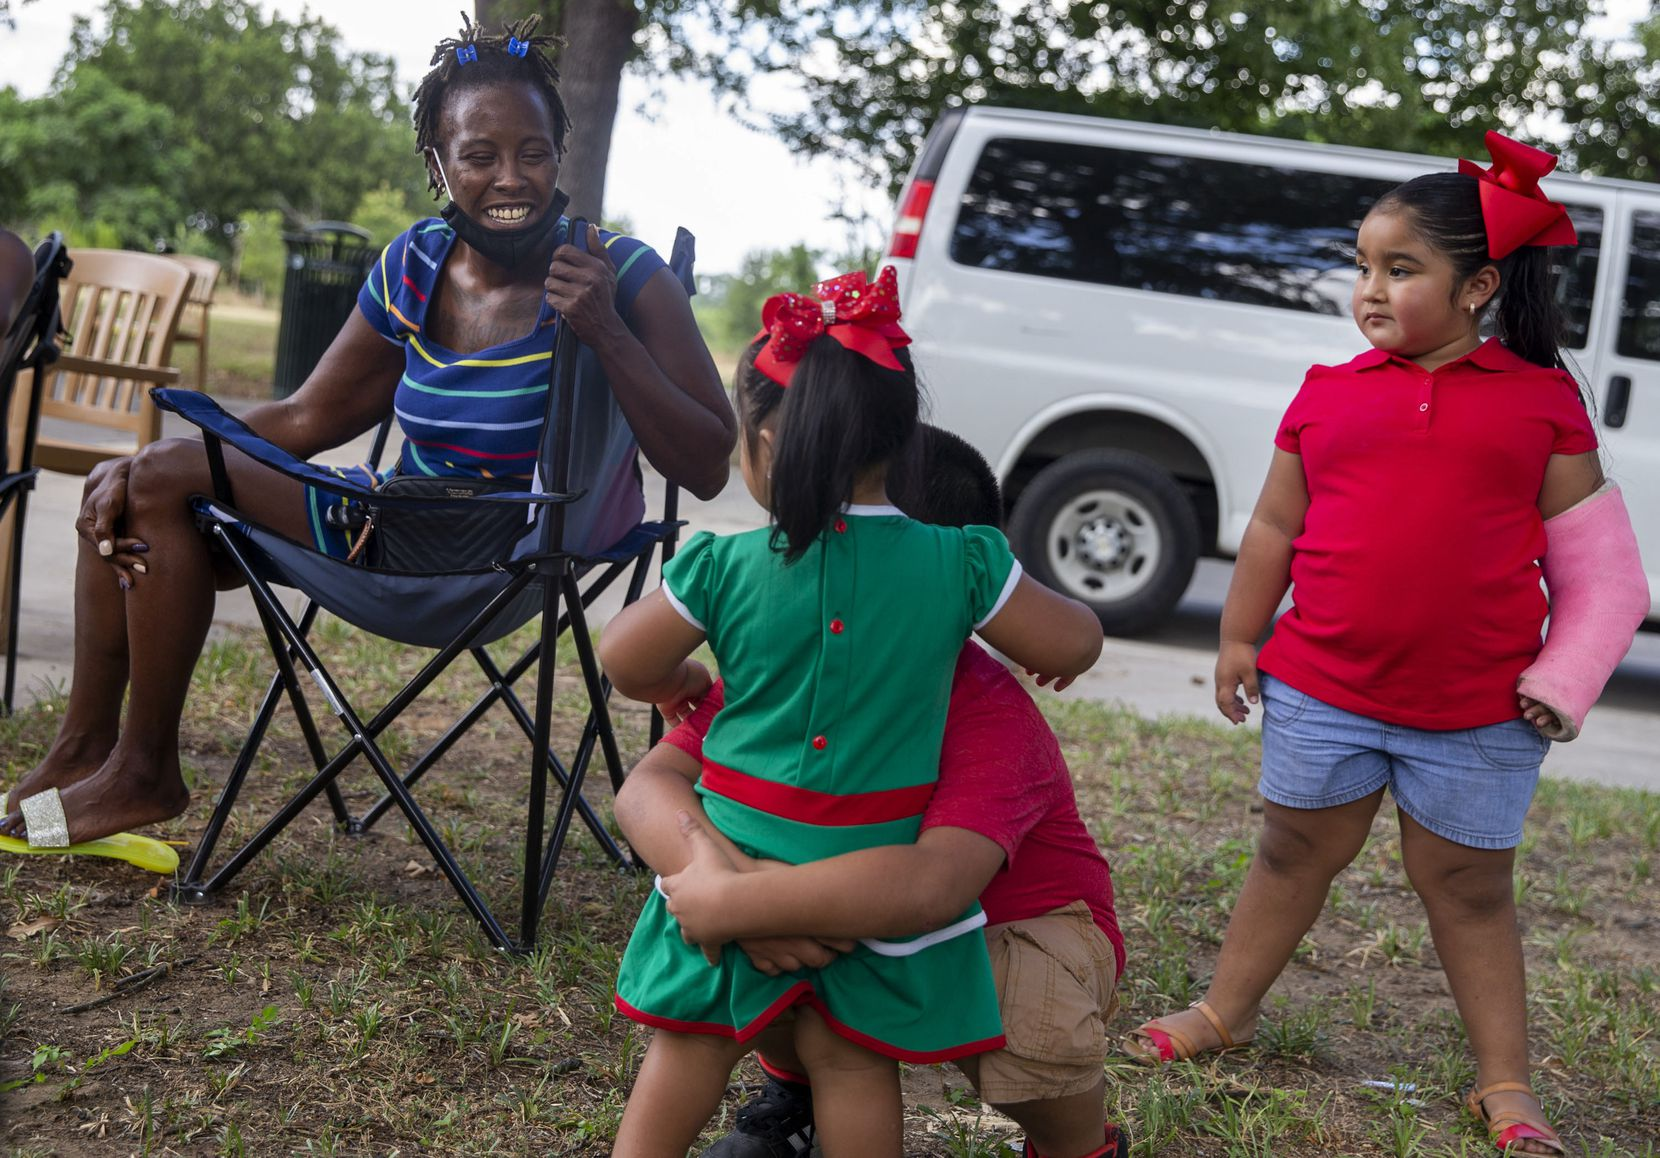 Treewana Davis (left) chats with siblings Yamilet Gonzalez, 2, Isaac Flores, 6, and Janessa Gonzalez, 4, during the Juneteenth celebration at Joppa Park in the Joppa neighborhood on June 19, 2020.